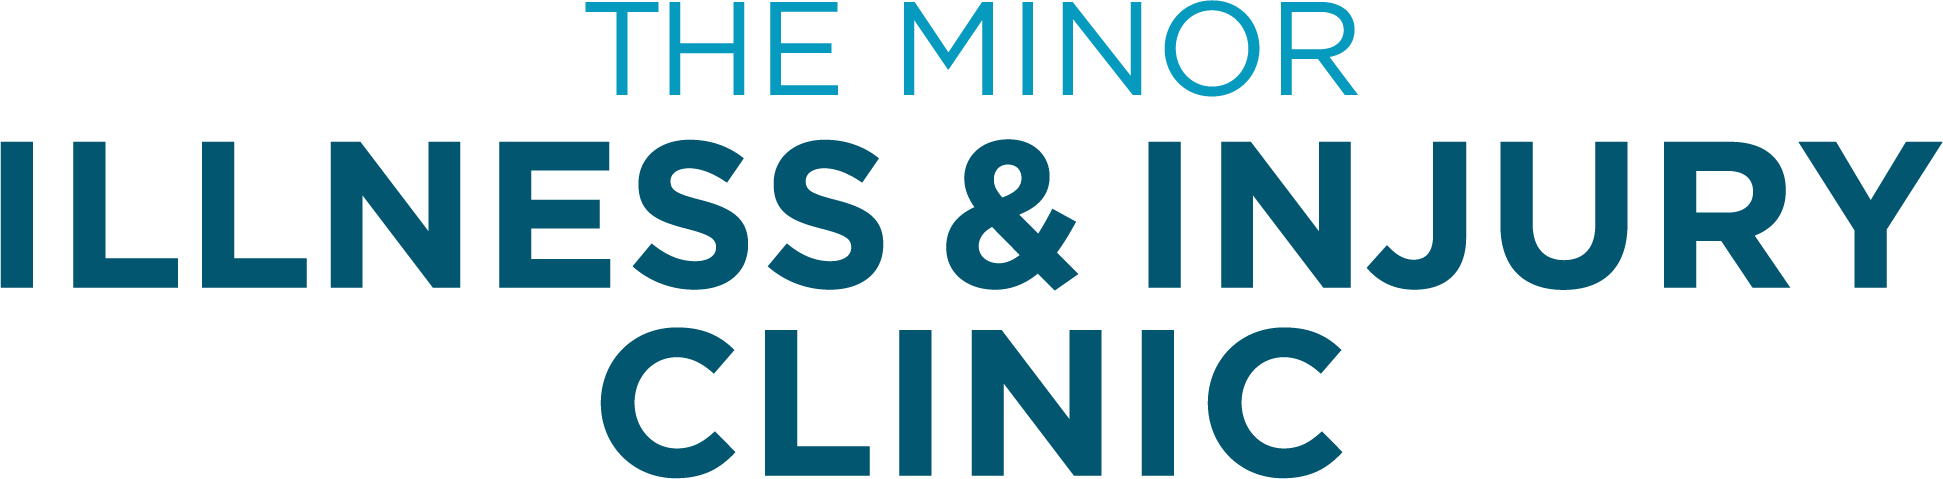 The Minor Illness & Injury Clinic